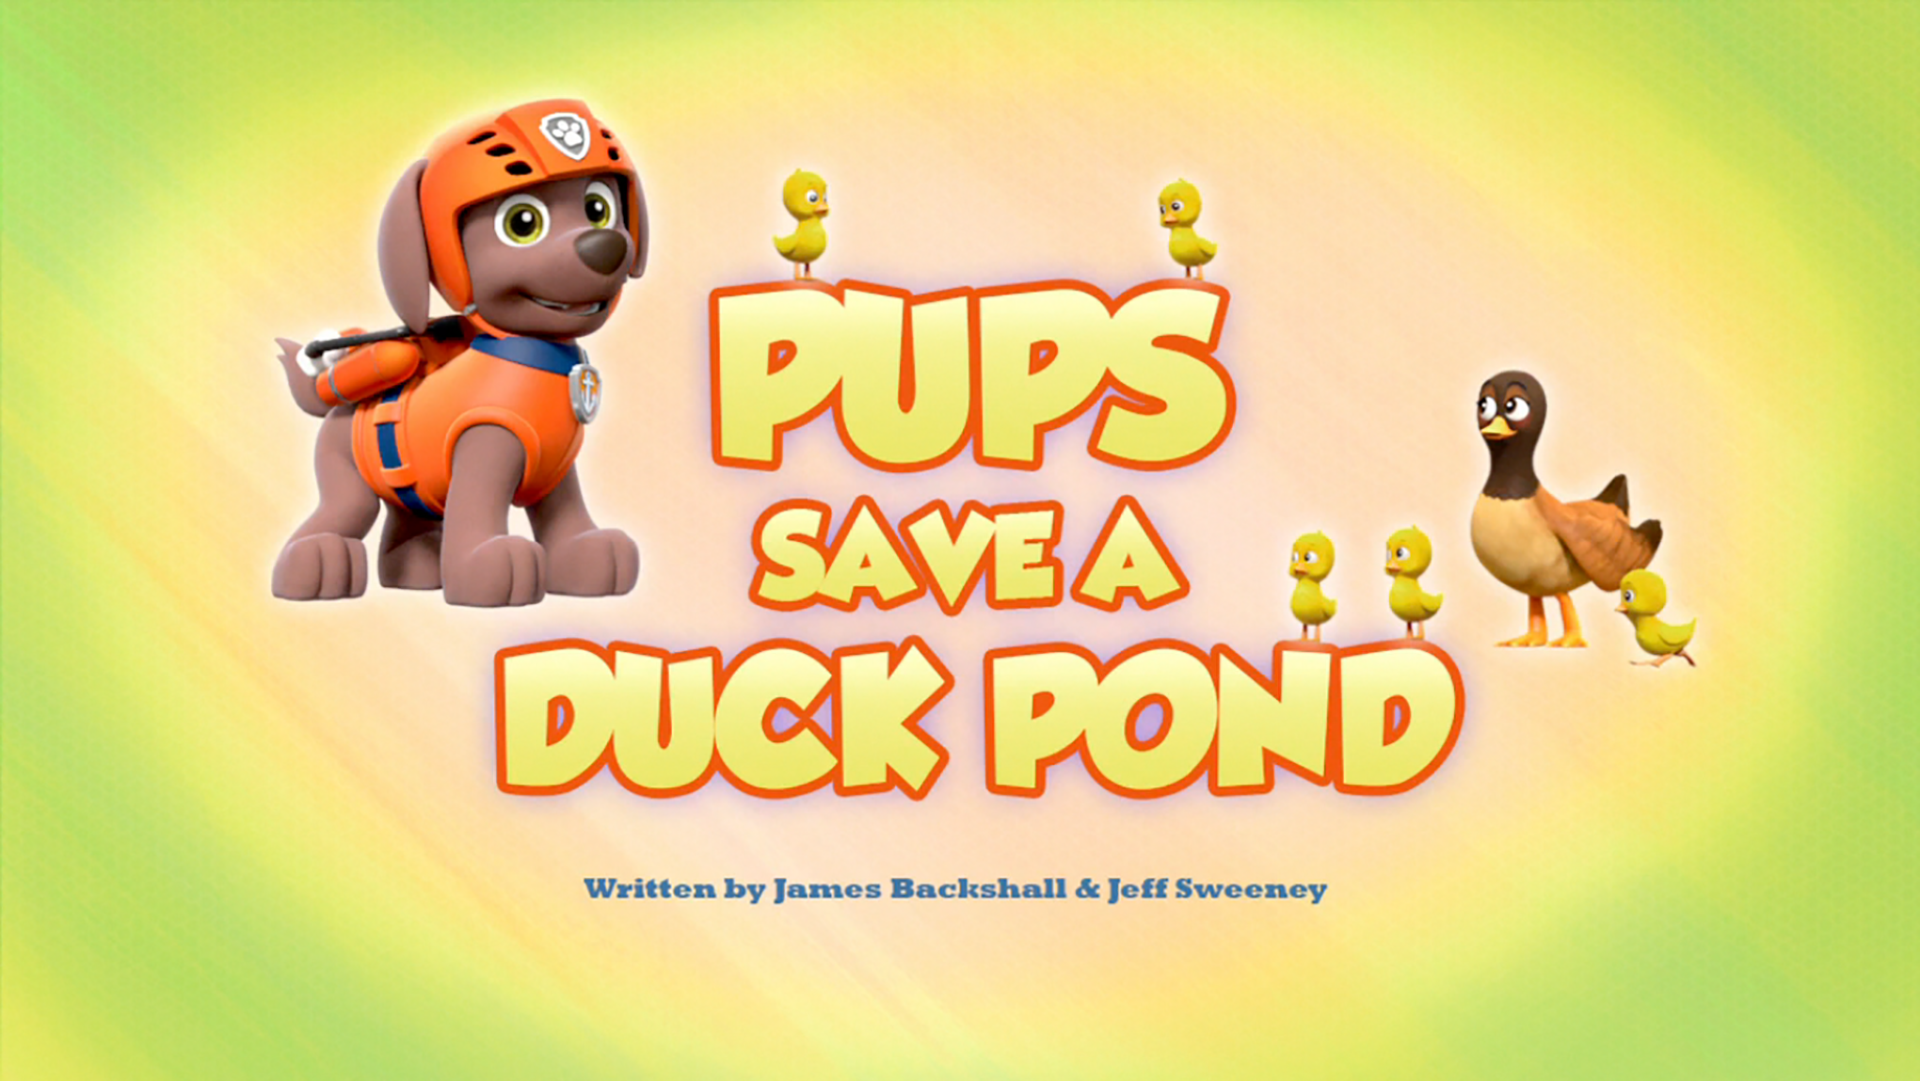 Pups Save a Duck Pond | PAW Patrol Wiki | FANDOM powered by